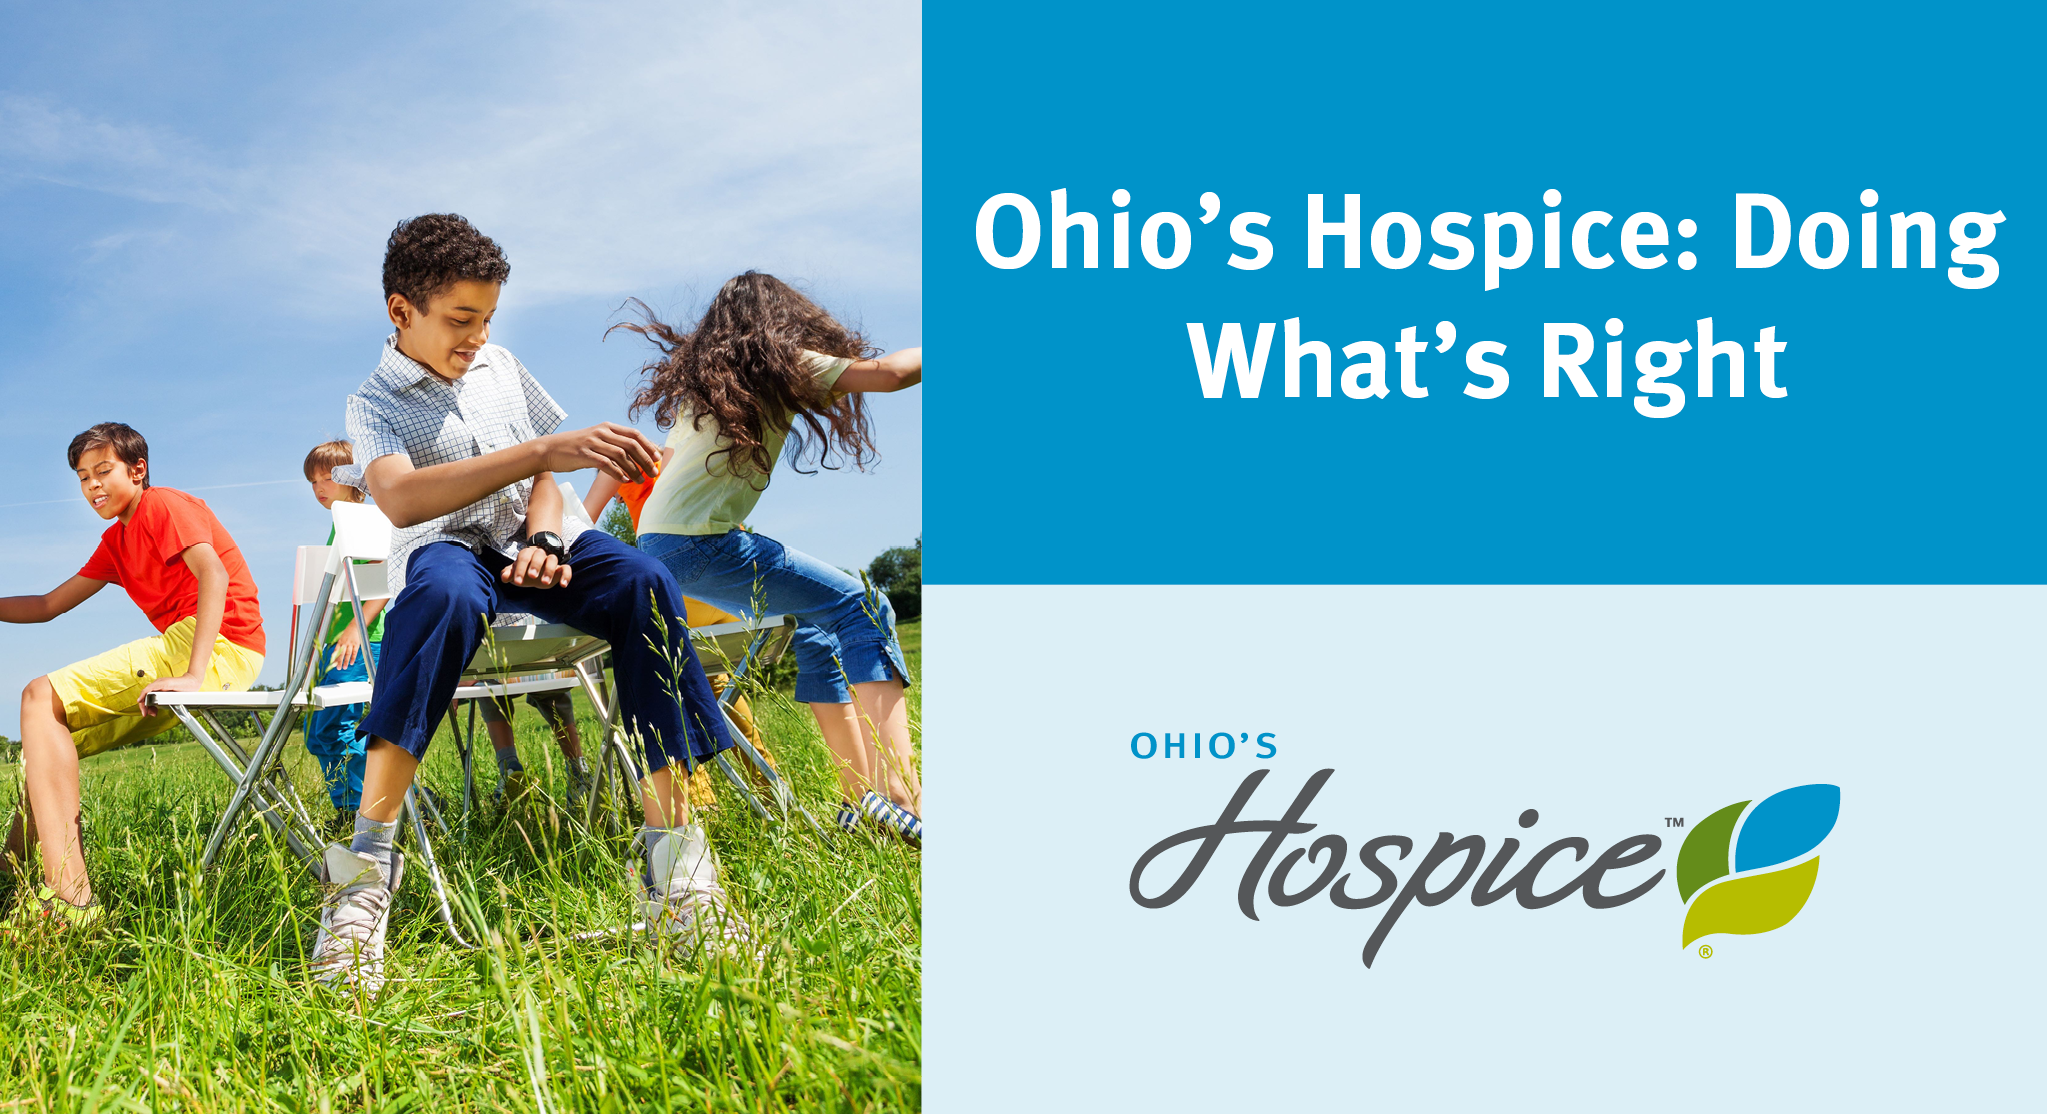 Ohio's Hospice: Doing What's Right